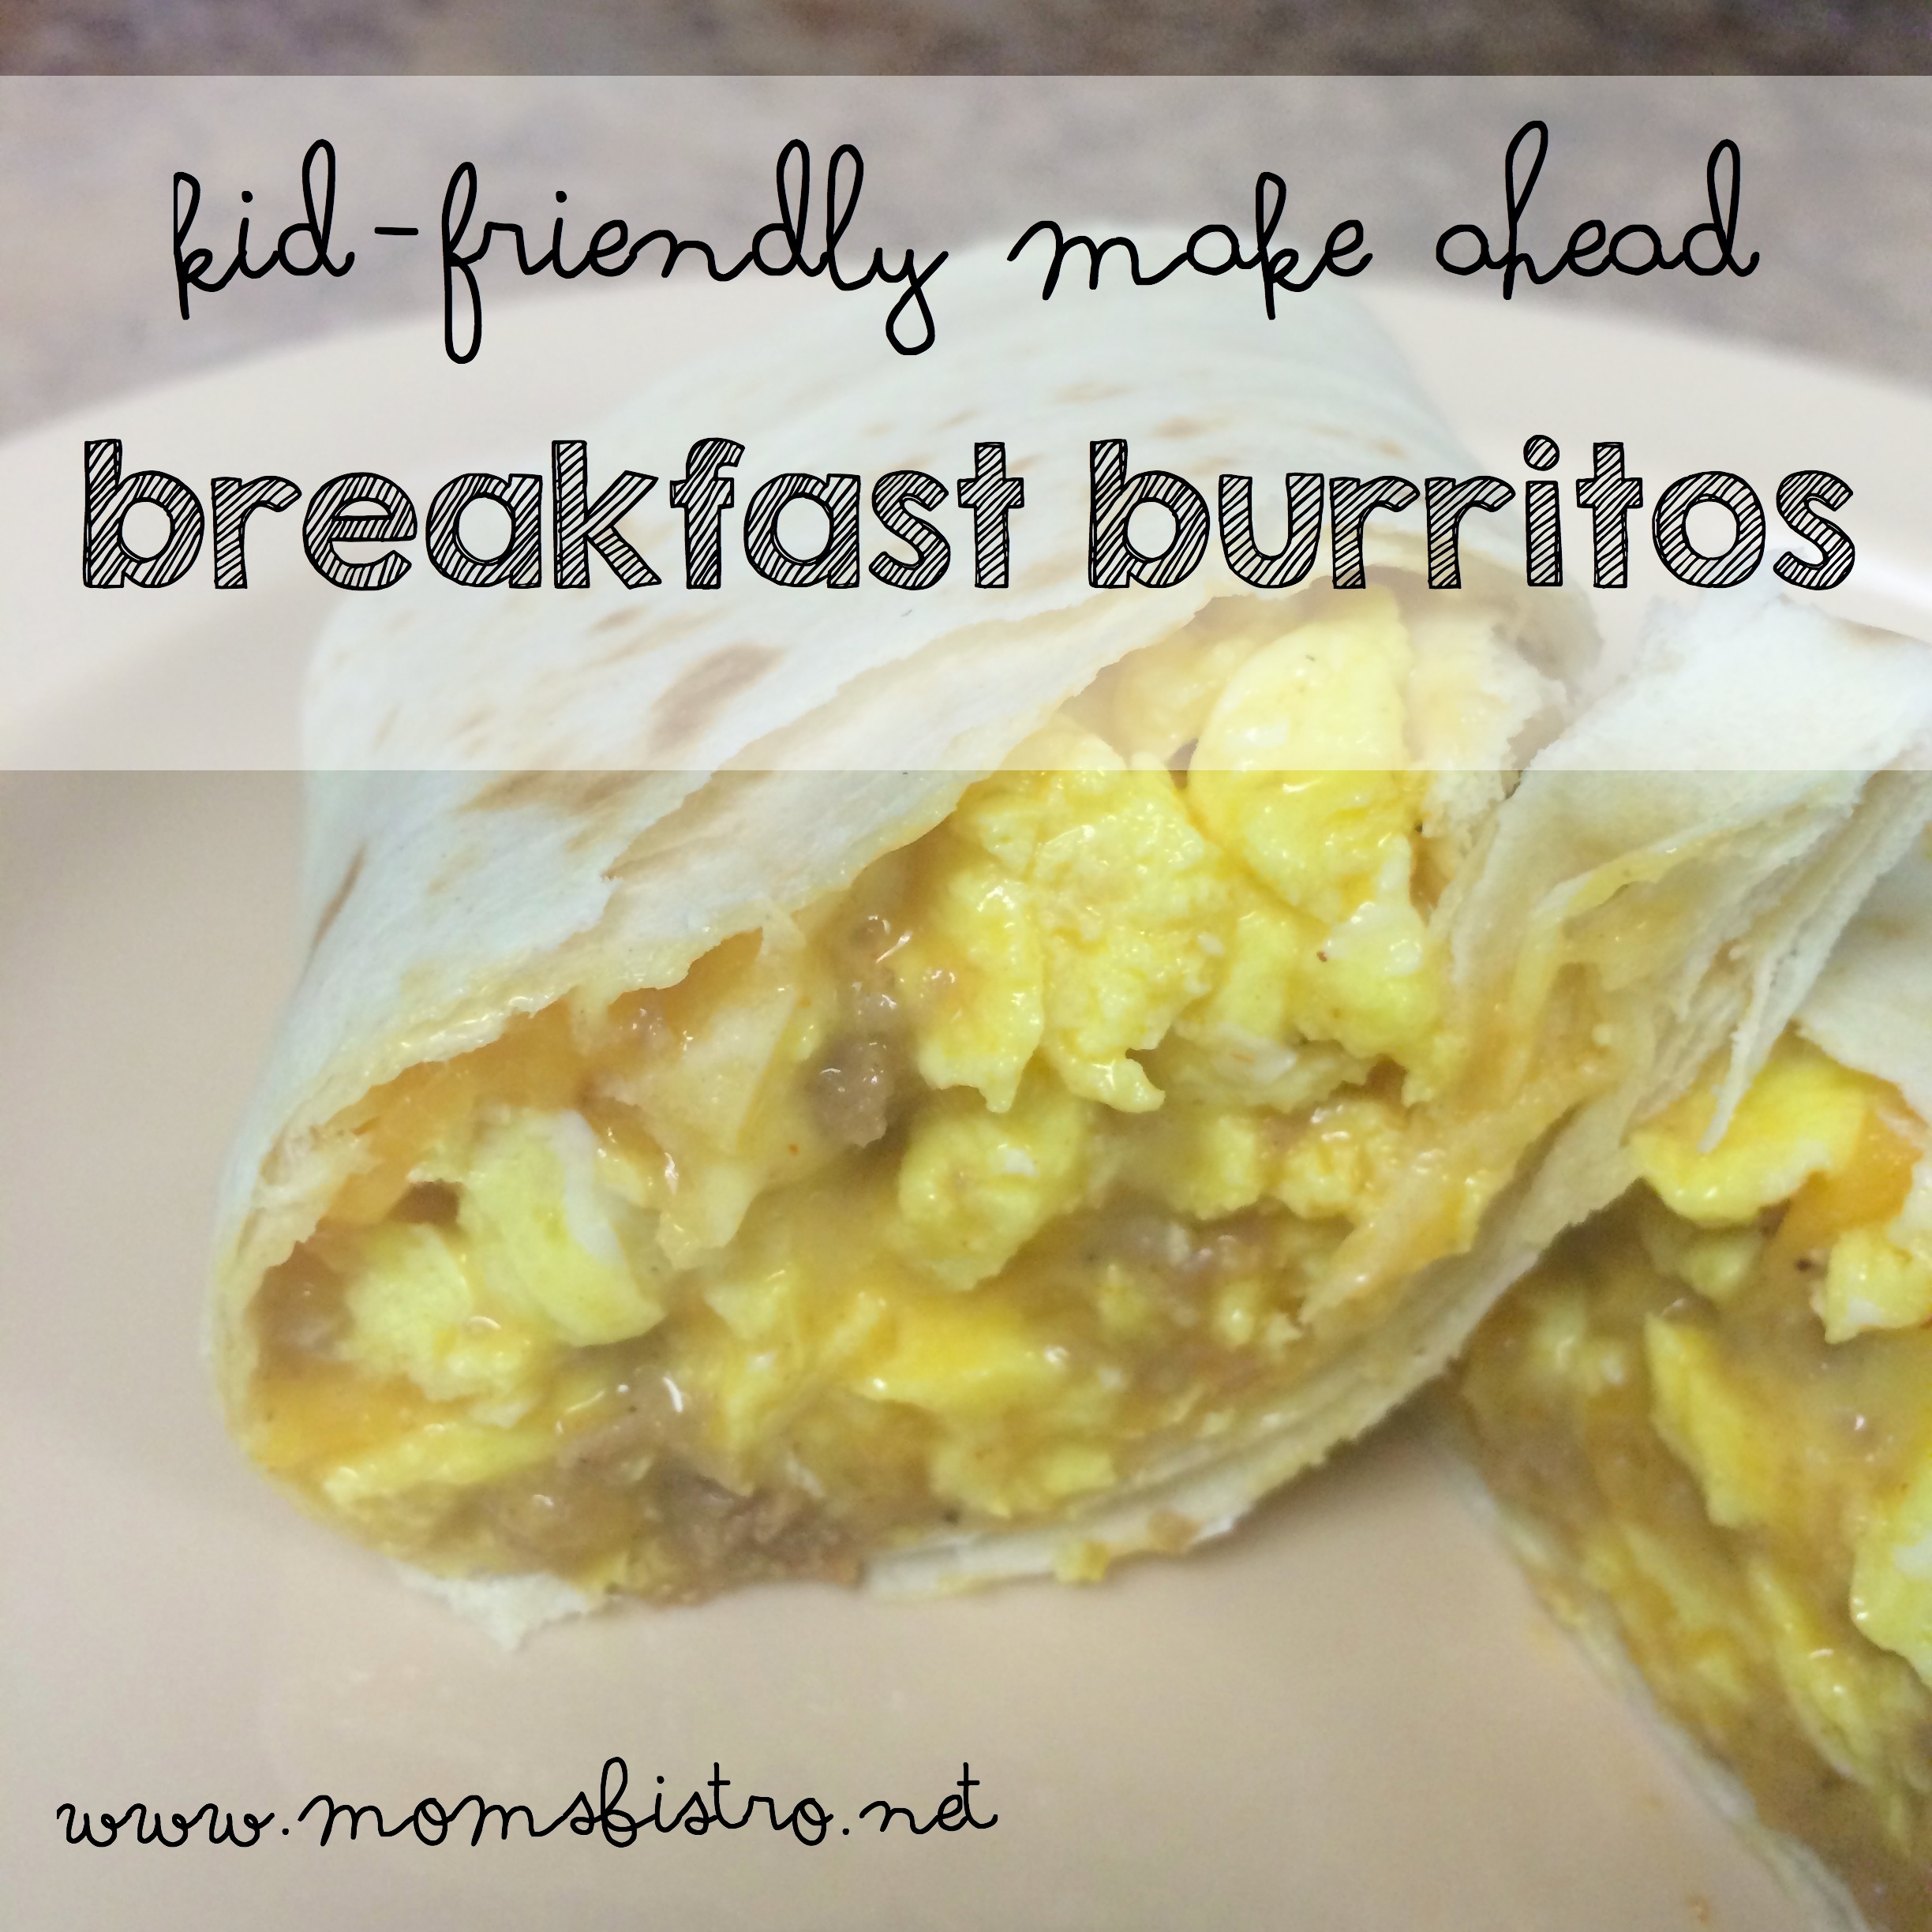 Kid-Friendly Breakfast Burritos | Easy Kid-Friendly Make Ahead Breakfast Burrito Recipe